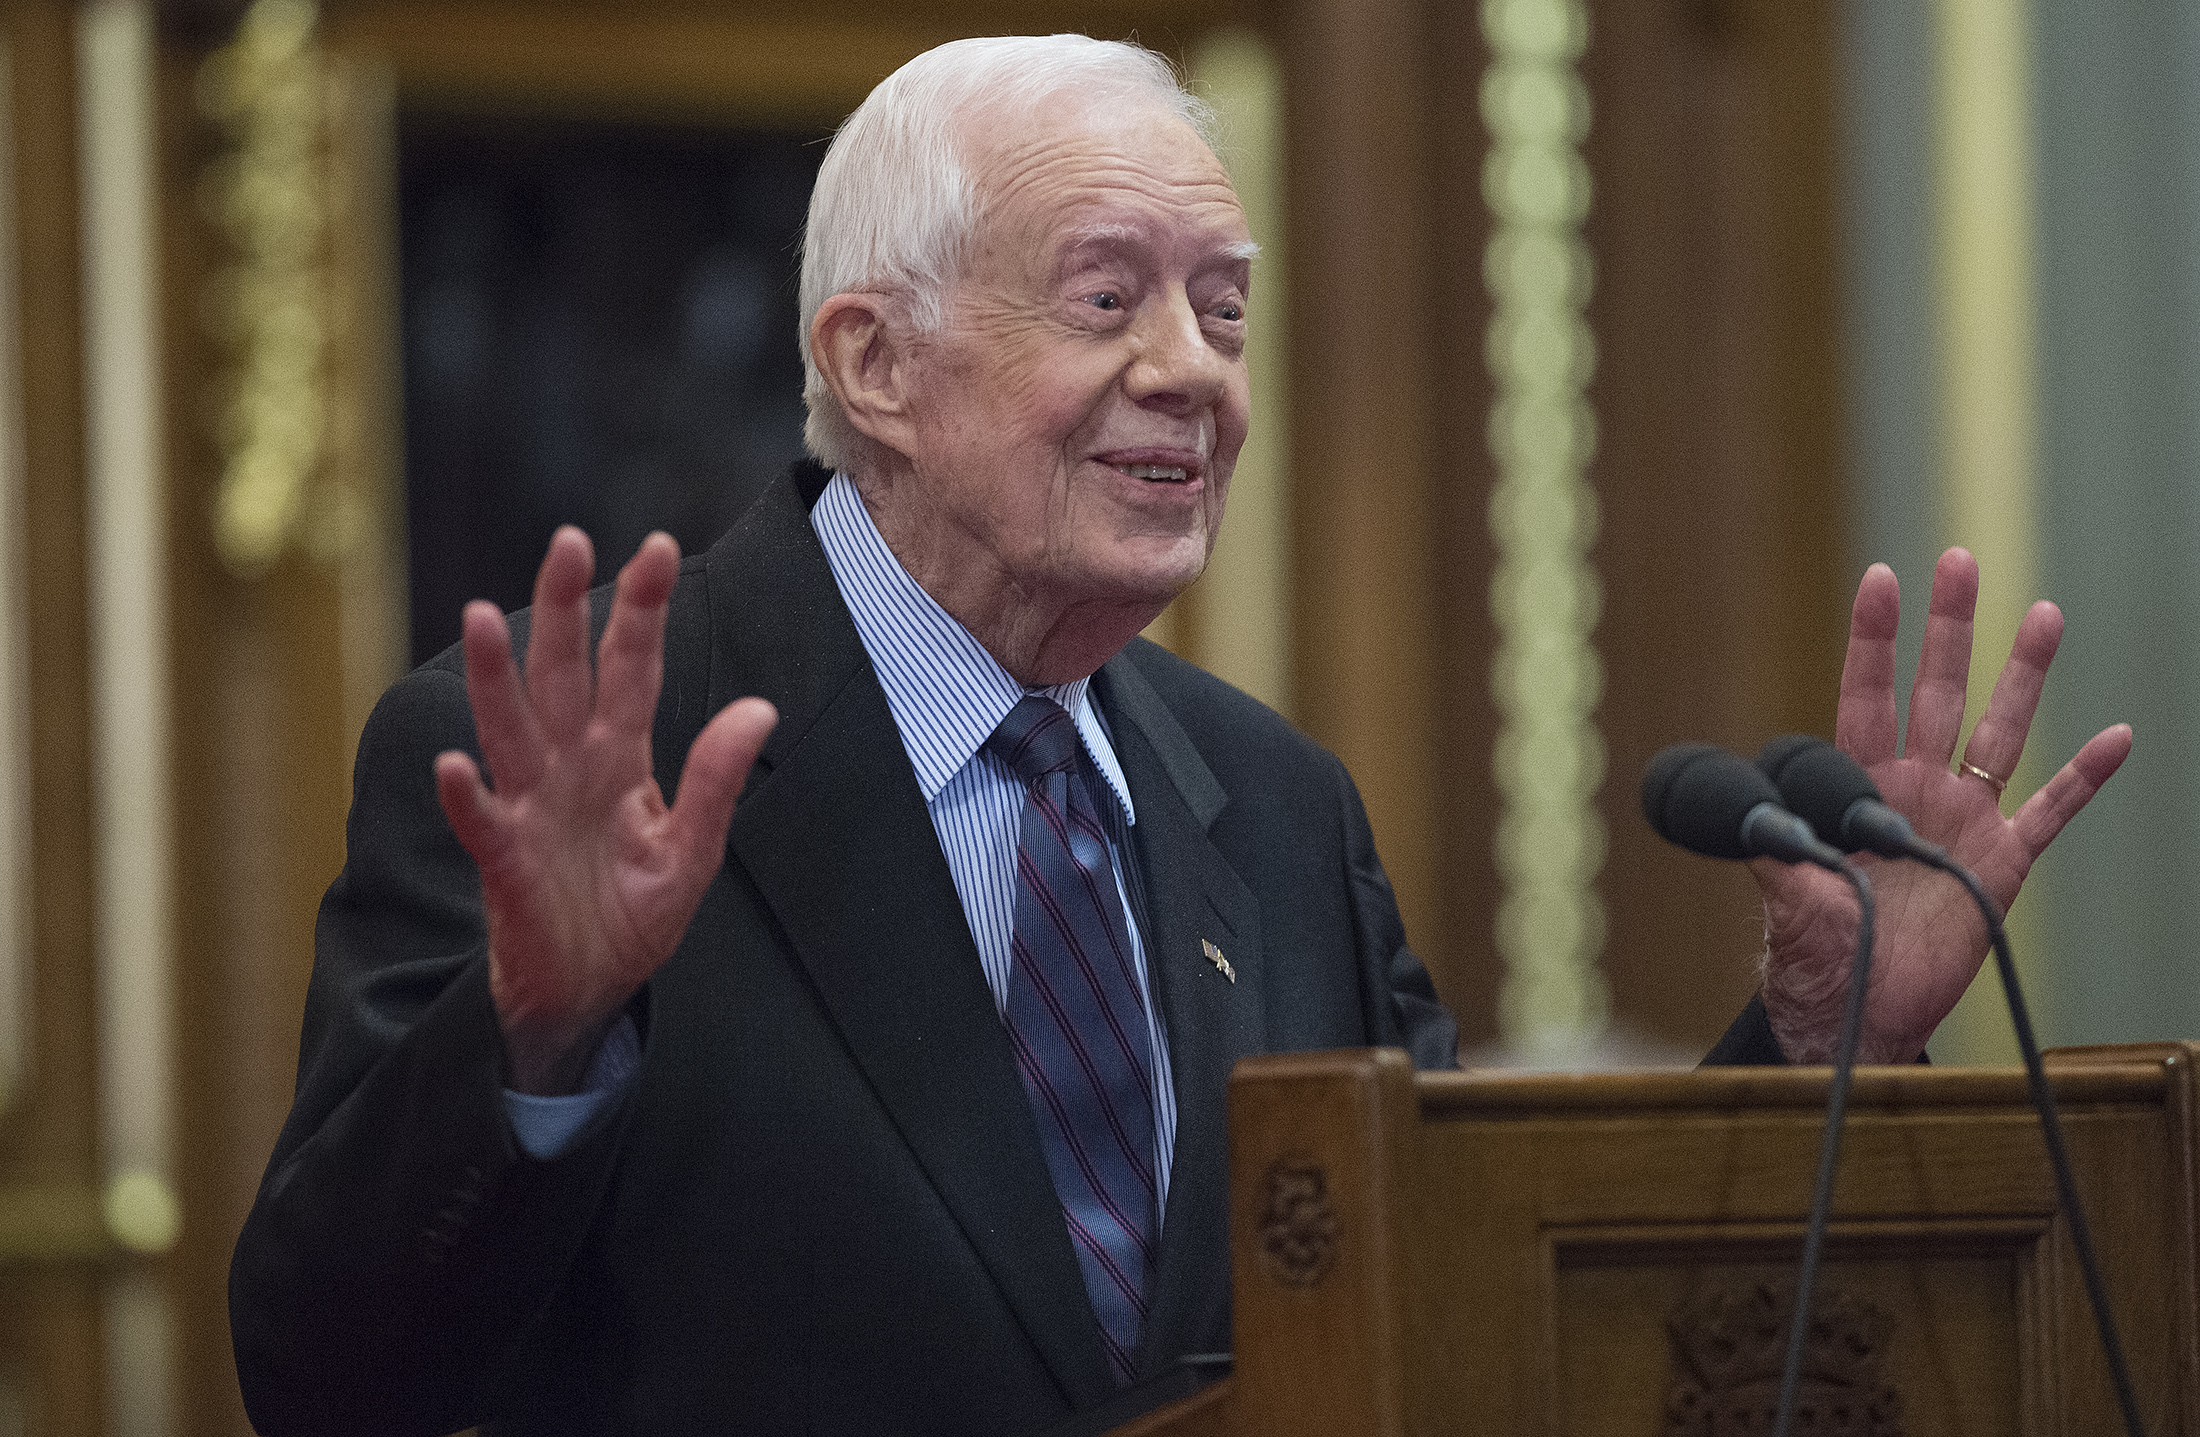 Former U.S. President Jimmy Carter delivers a lecture on the eradication of the Guinea worm at the House of Lords on Feb. 3, 2016 in London.